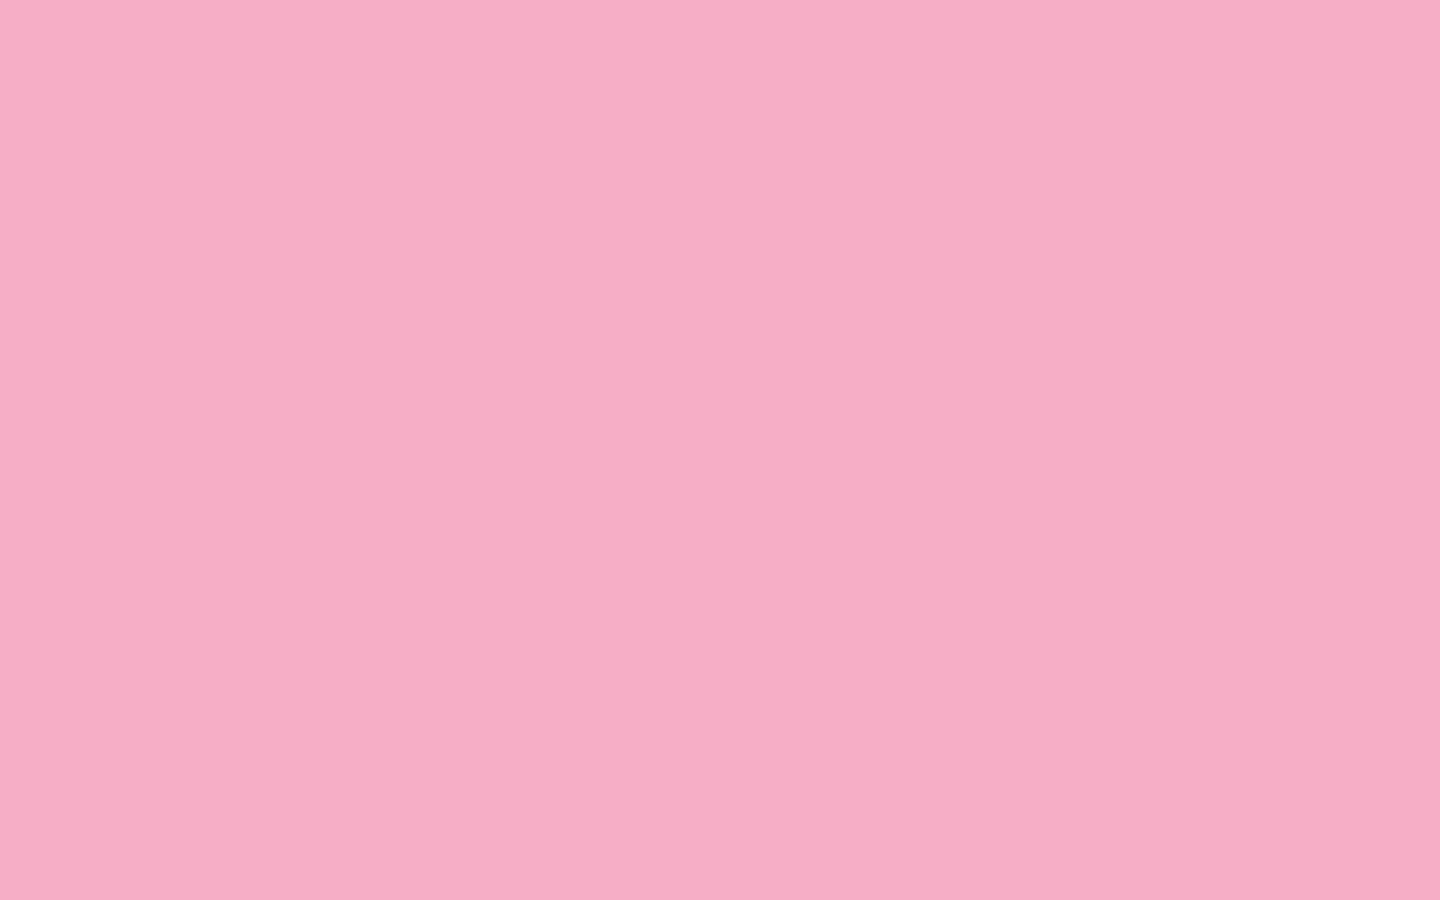 1440x900 Nadeshiko Pink Solid Color Background